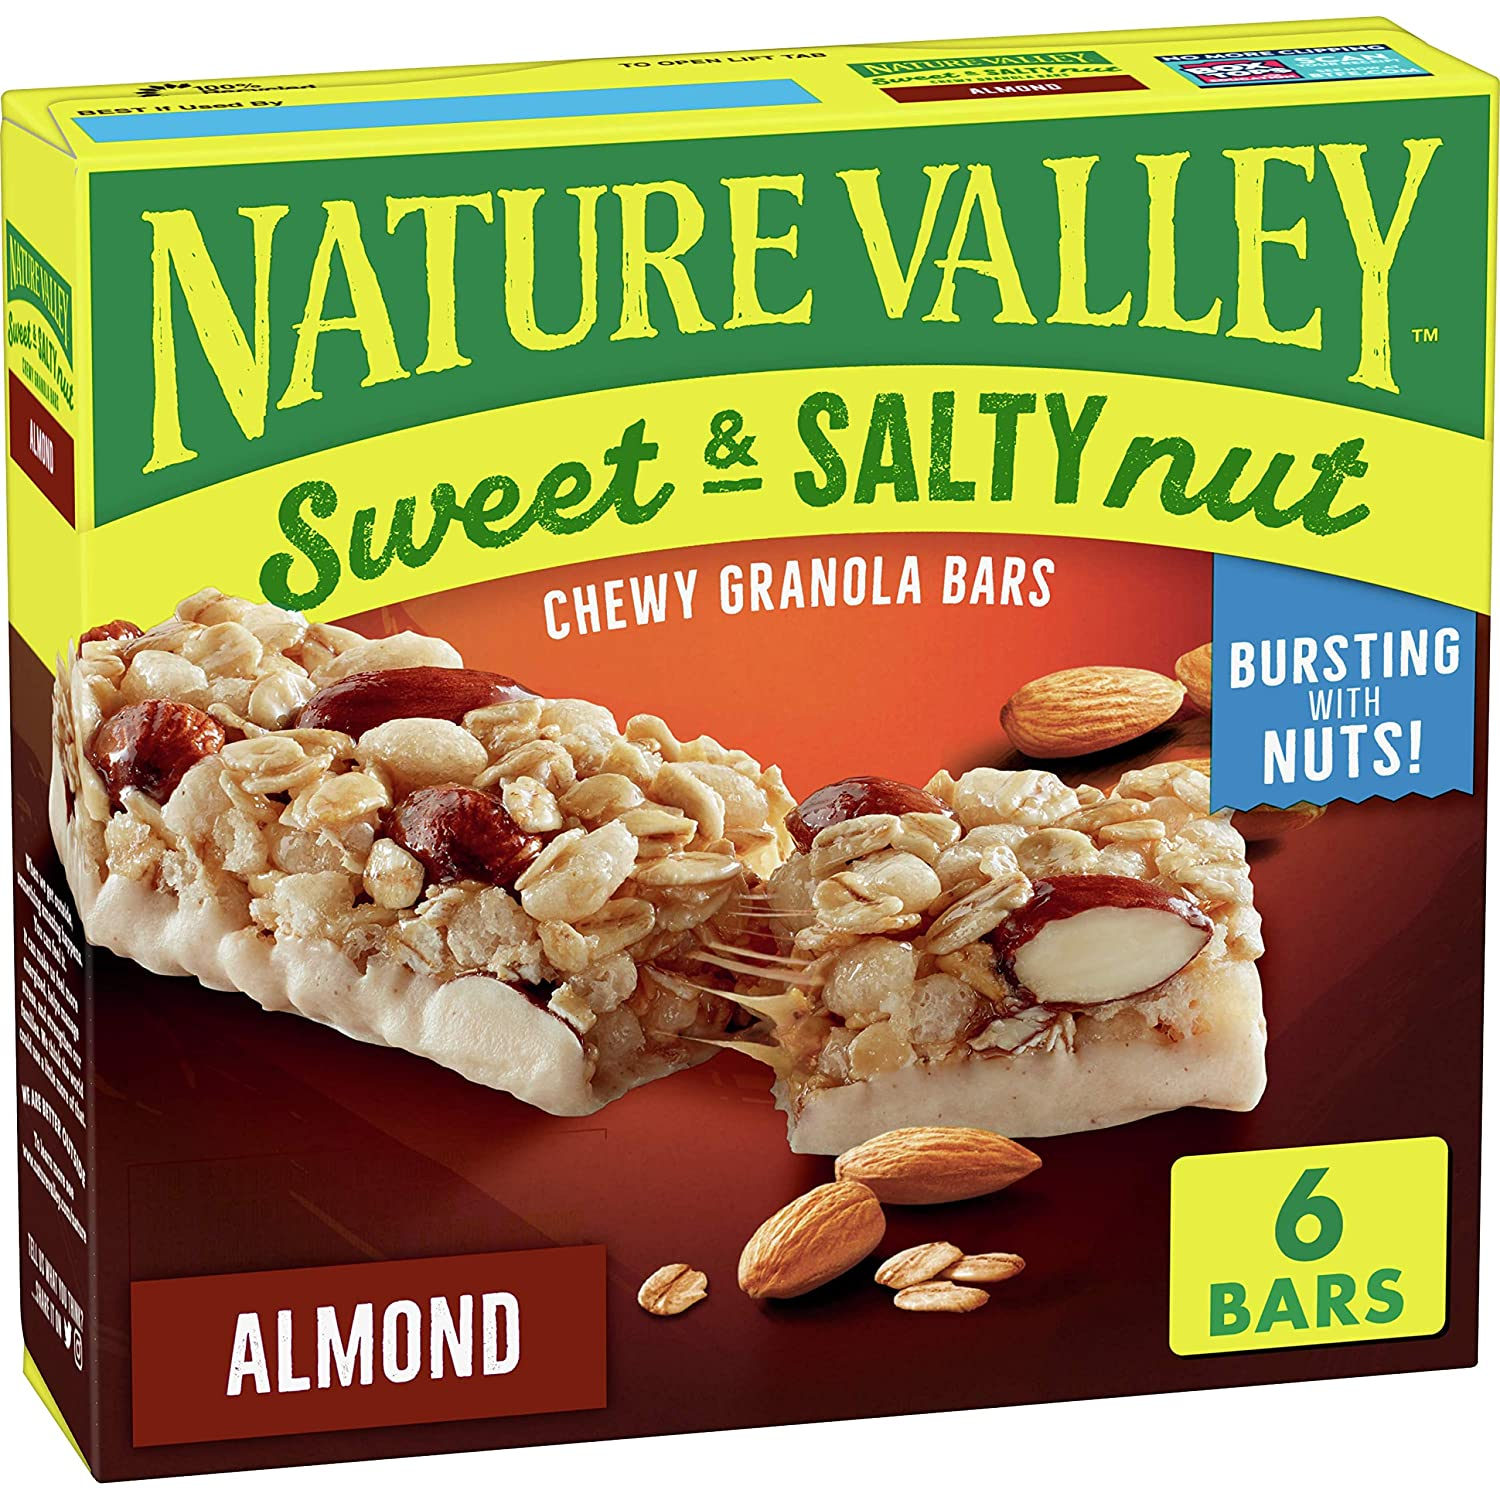 Nature Valley Granola Bars Sweet And Salty Nut Almond 6 Ct 7 4 Oz Amazon Com Grocery Gourmet Food